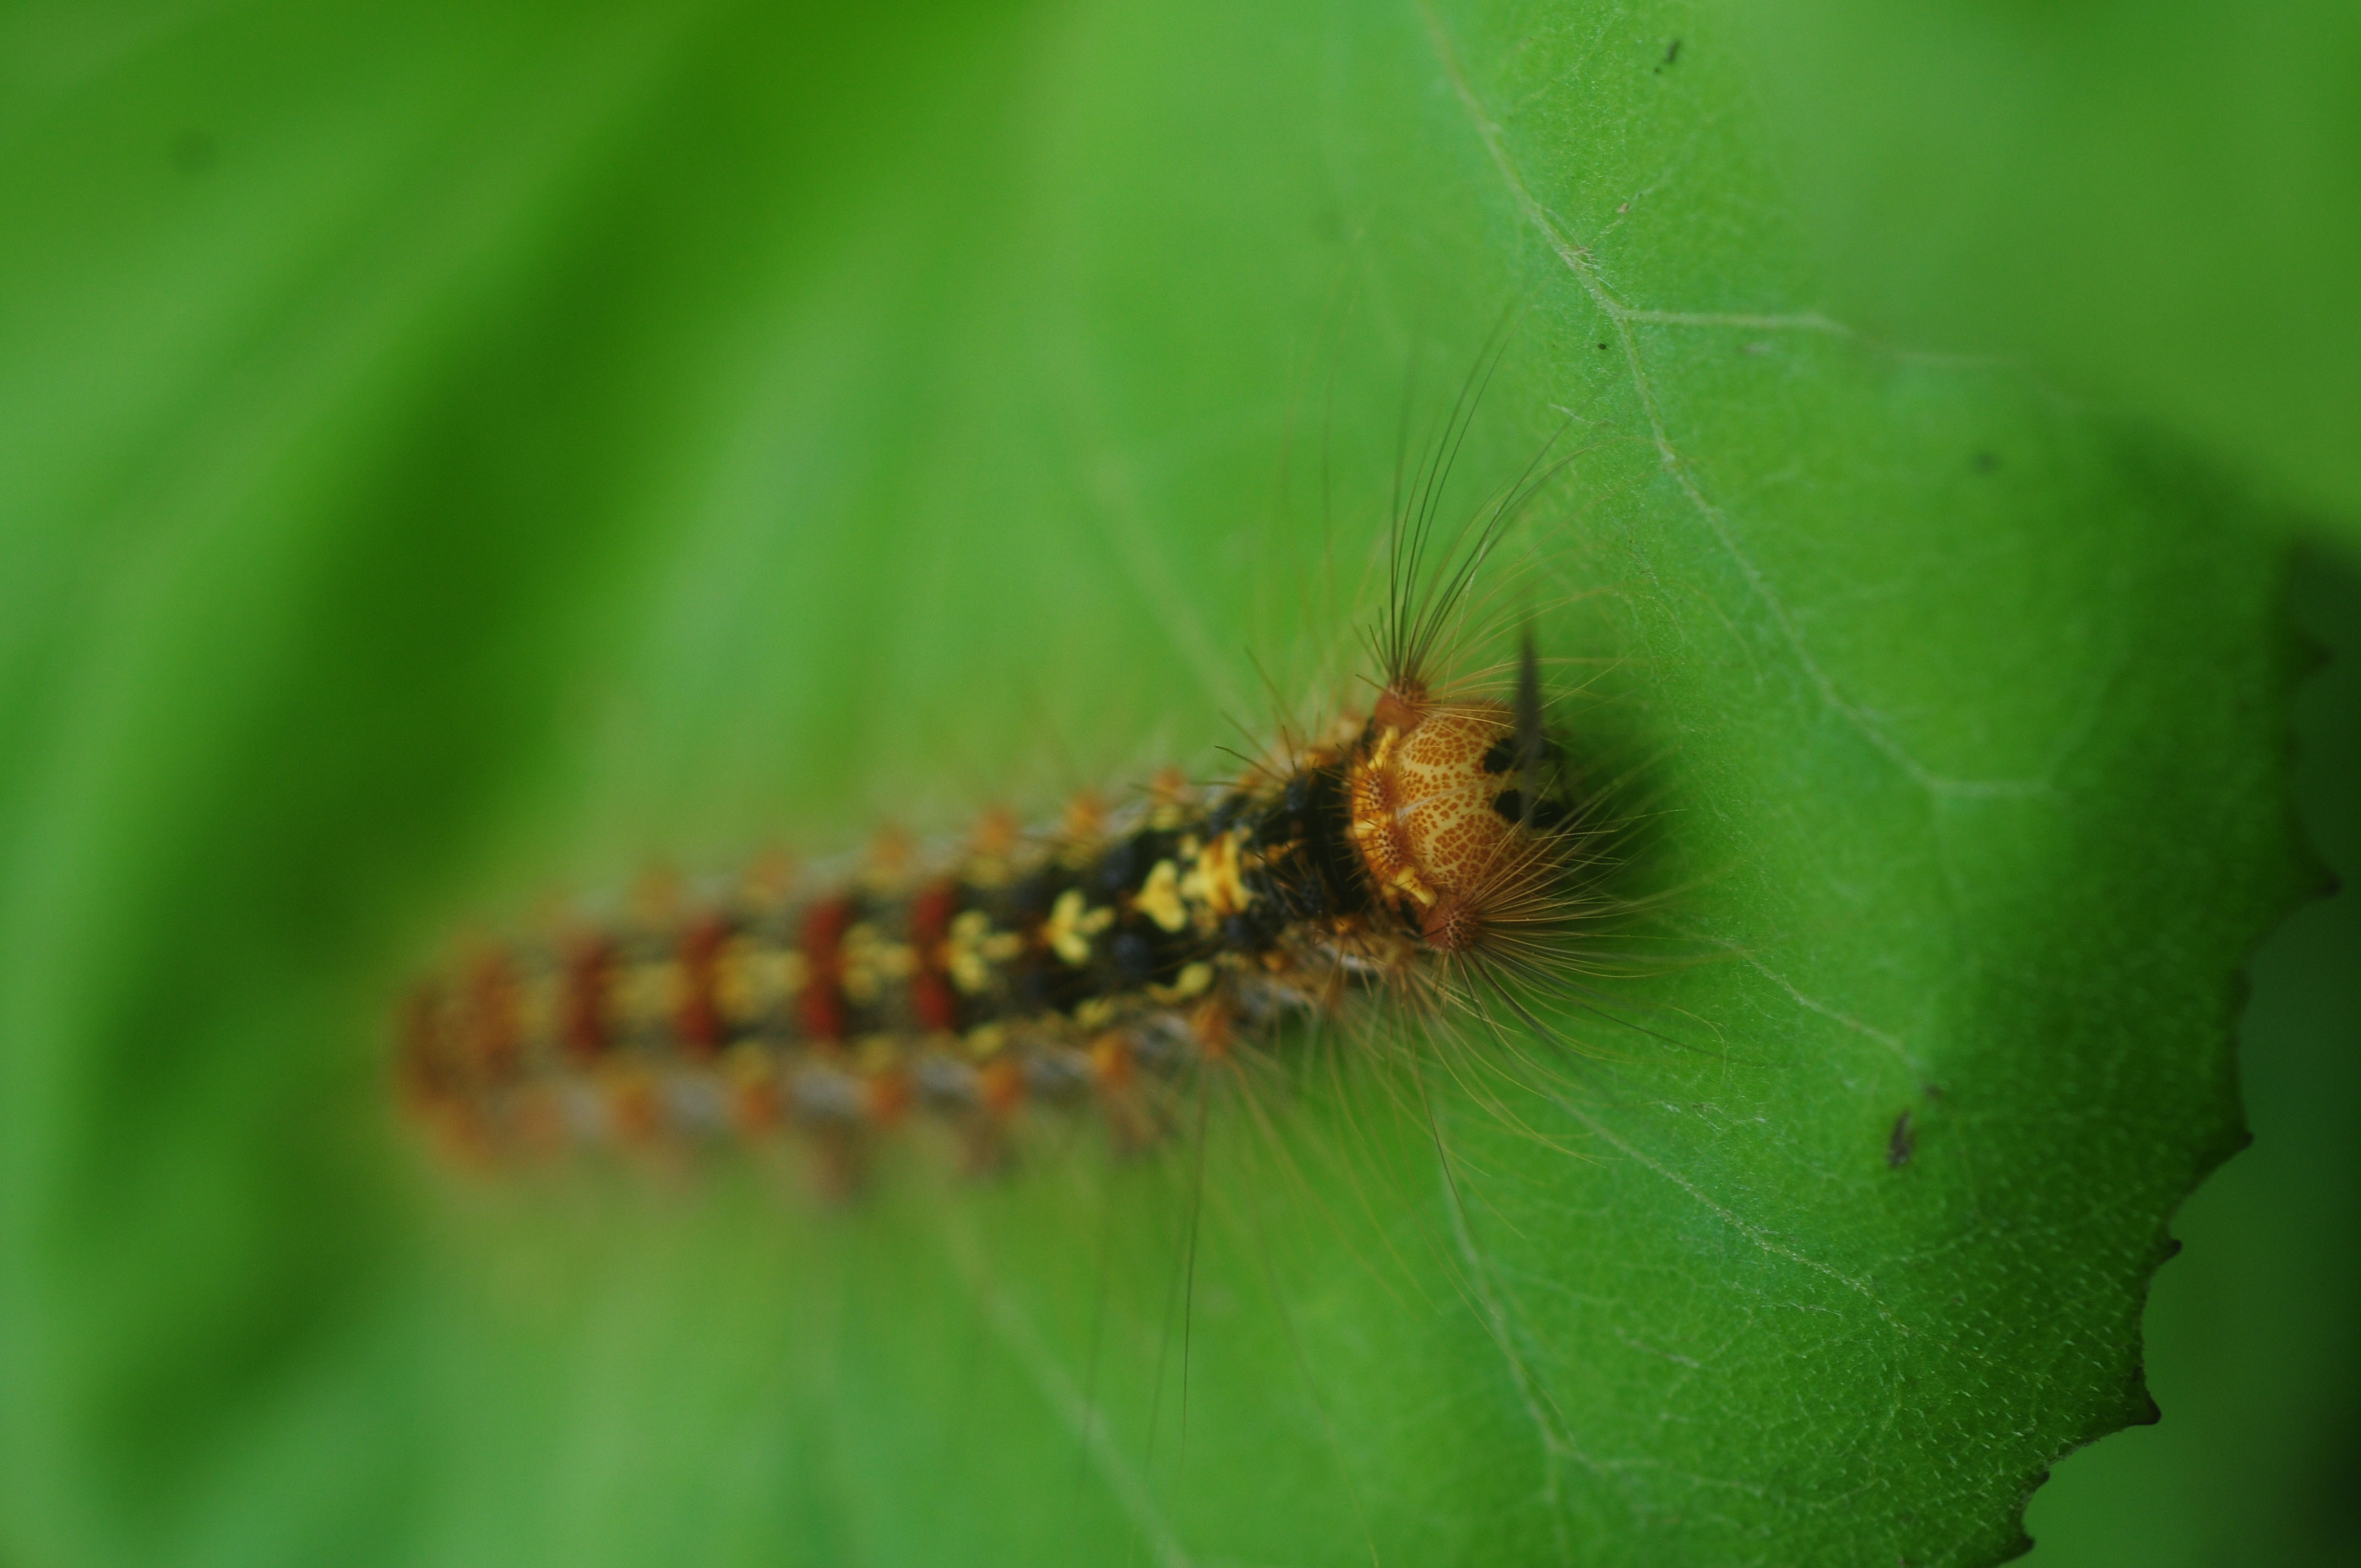 Poisonous pals: This plump and furry caterpillar is not to be cuddled, since its toxins will give you a nasty rash. | C.W. NICOL